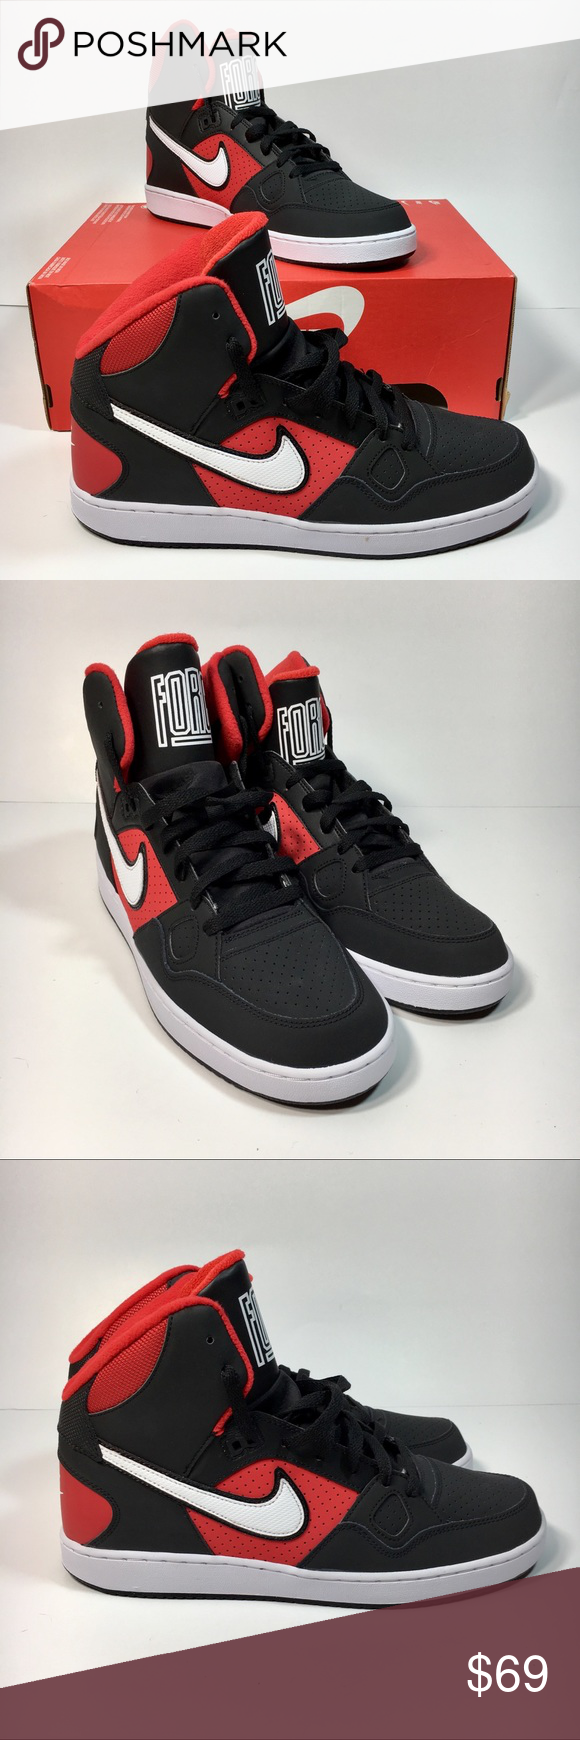 Nike Son Of Force Men's 10.5 Mid Basketball Shoes Nike Son